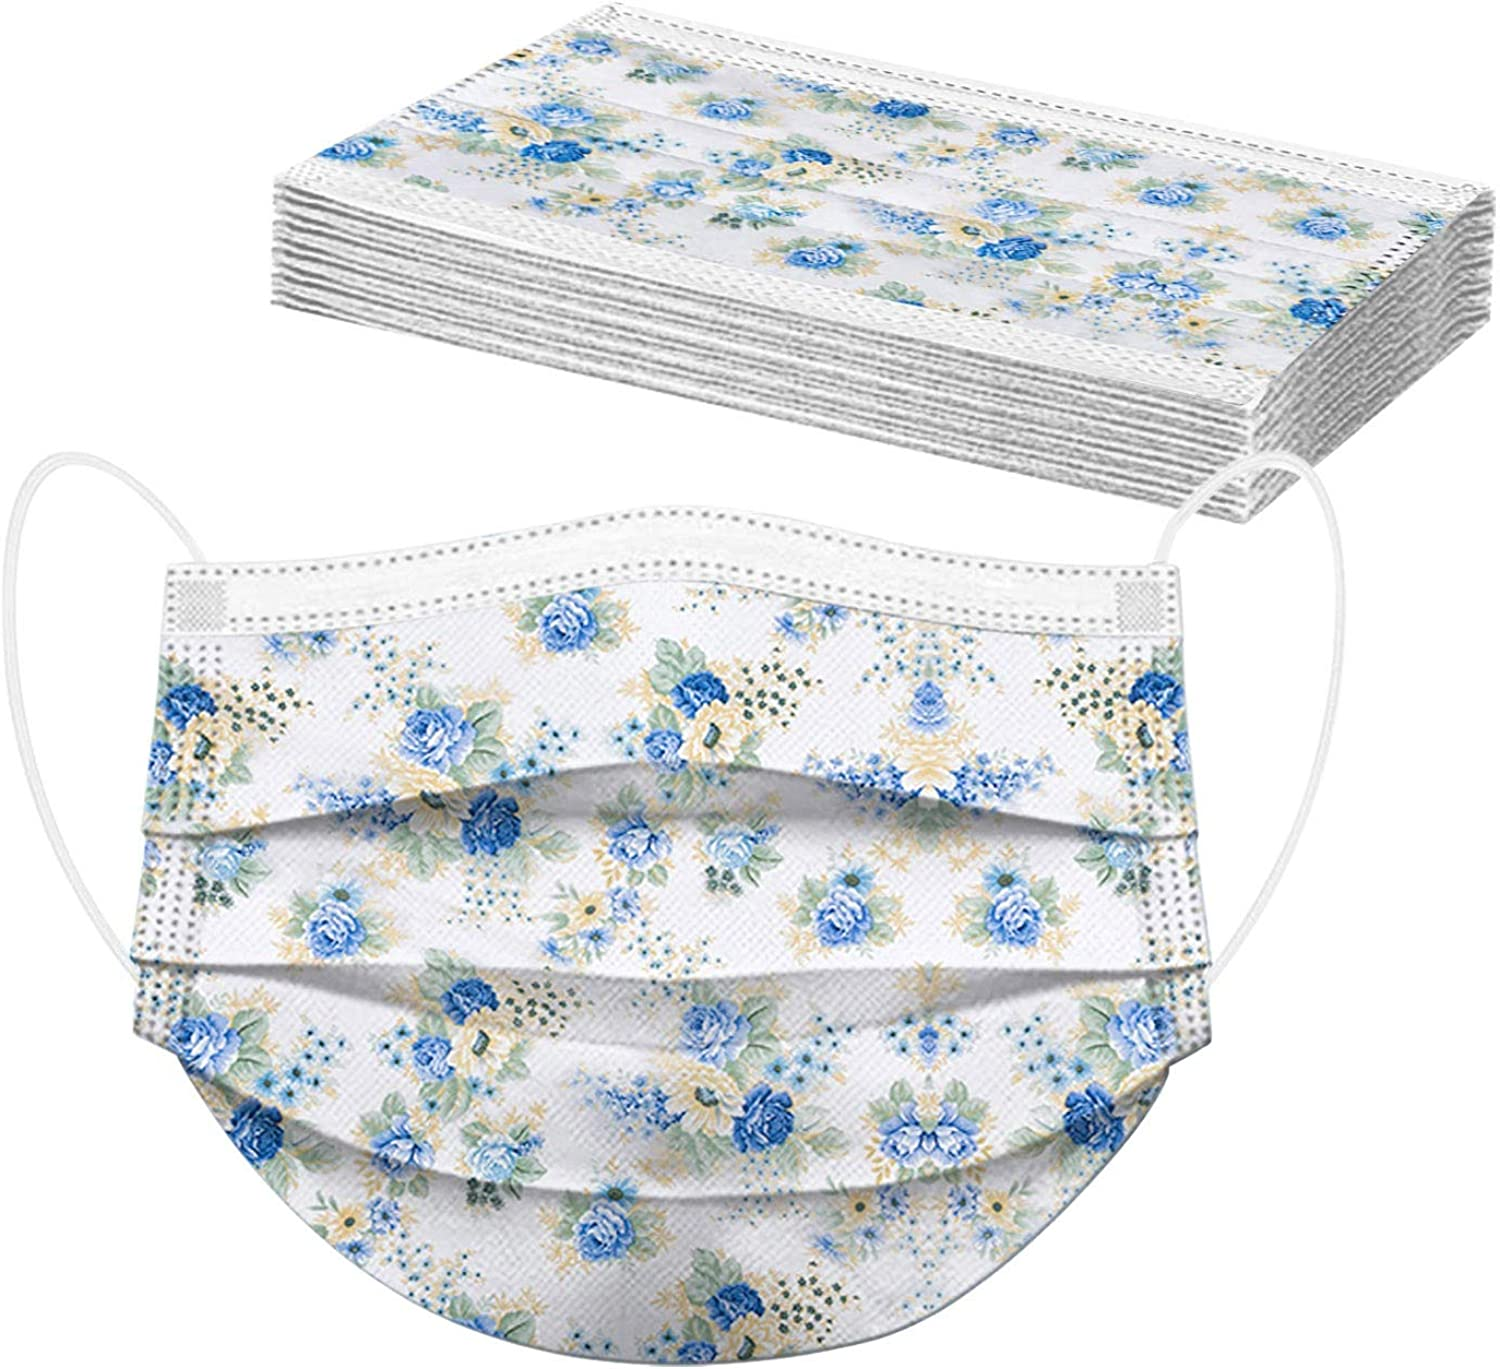 Disposable Face_Masks with Designs for Adult Beautiful Elegant Flower Print Face_mask Breathable Face Bandanas Balaclava